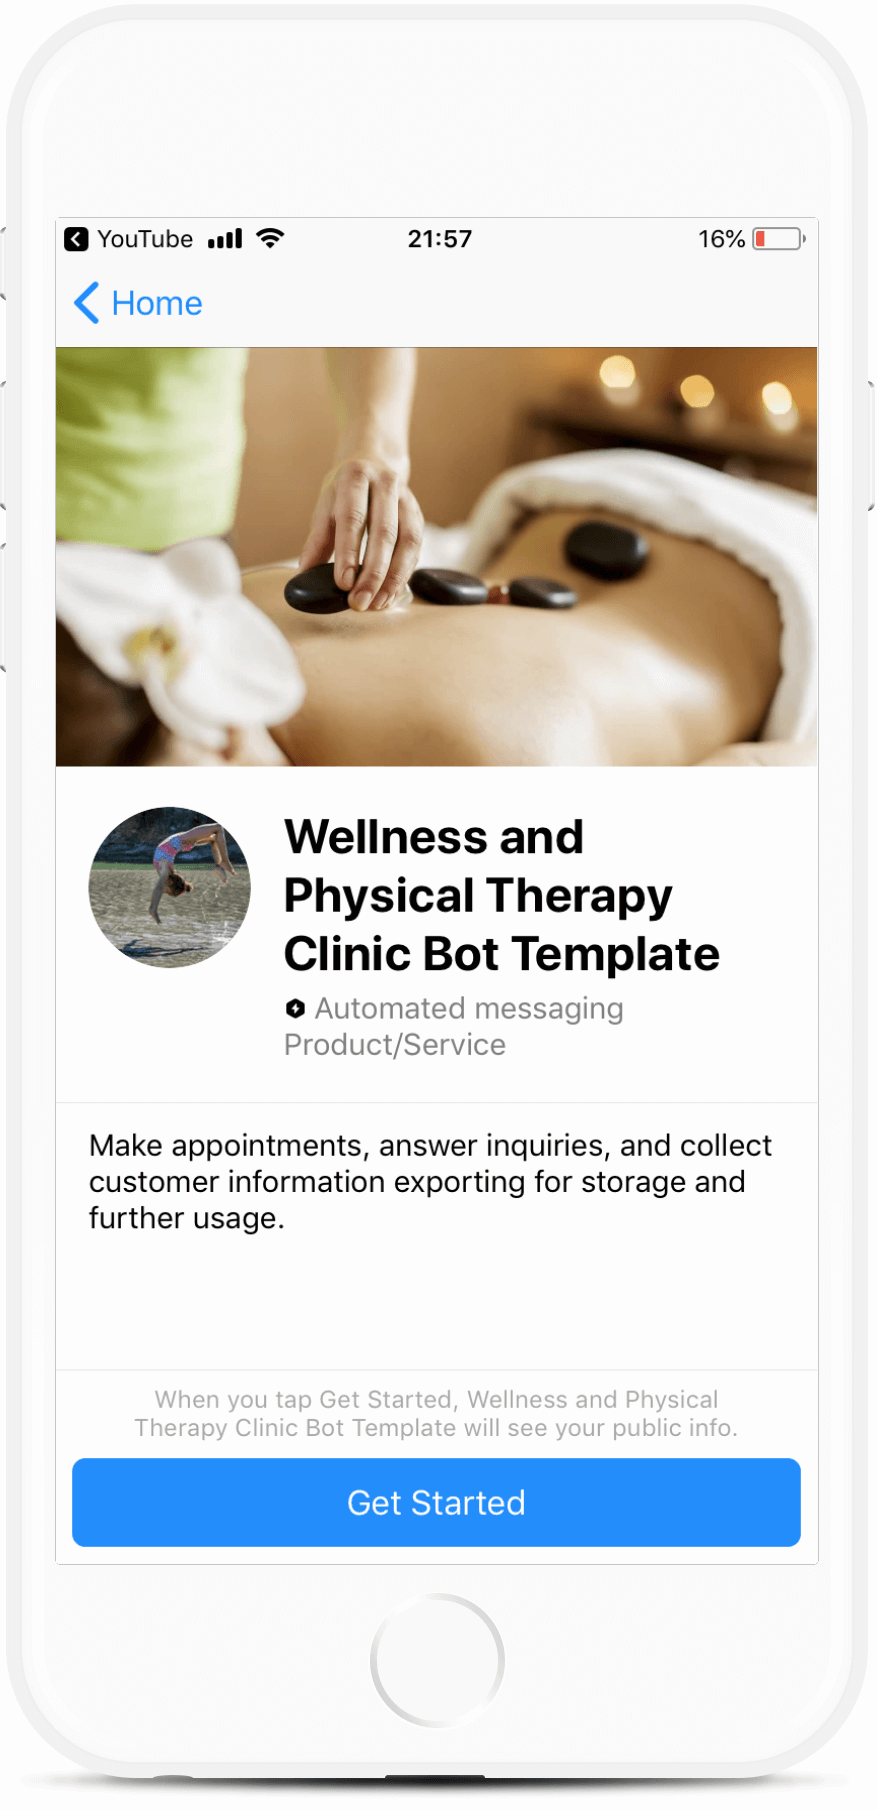 Wellness and Physical Therapy Clinic Bot Template Messenger bot screenshot